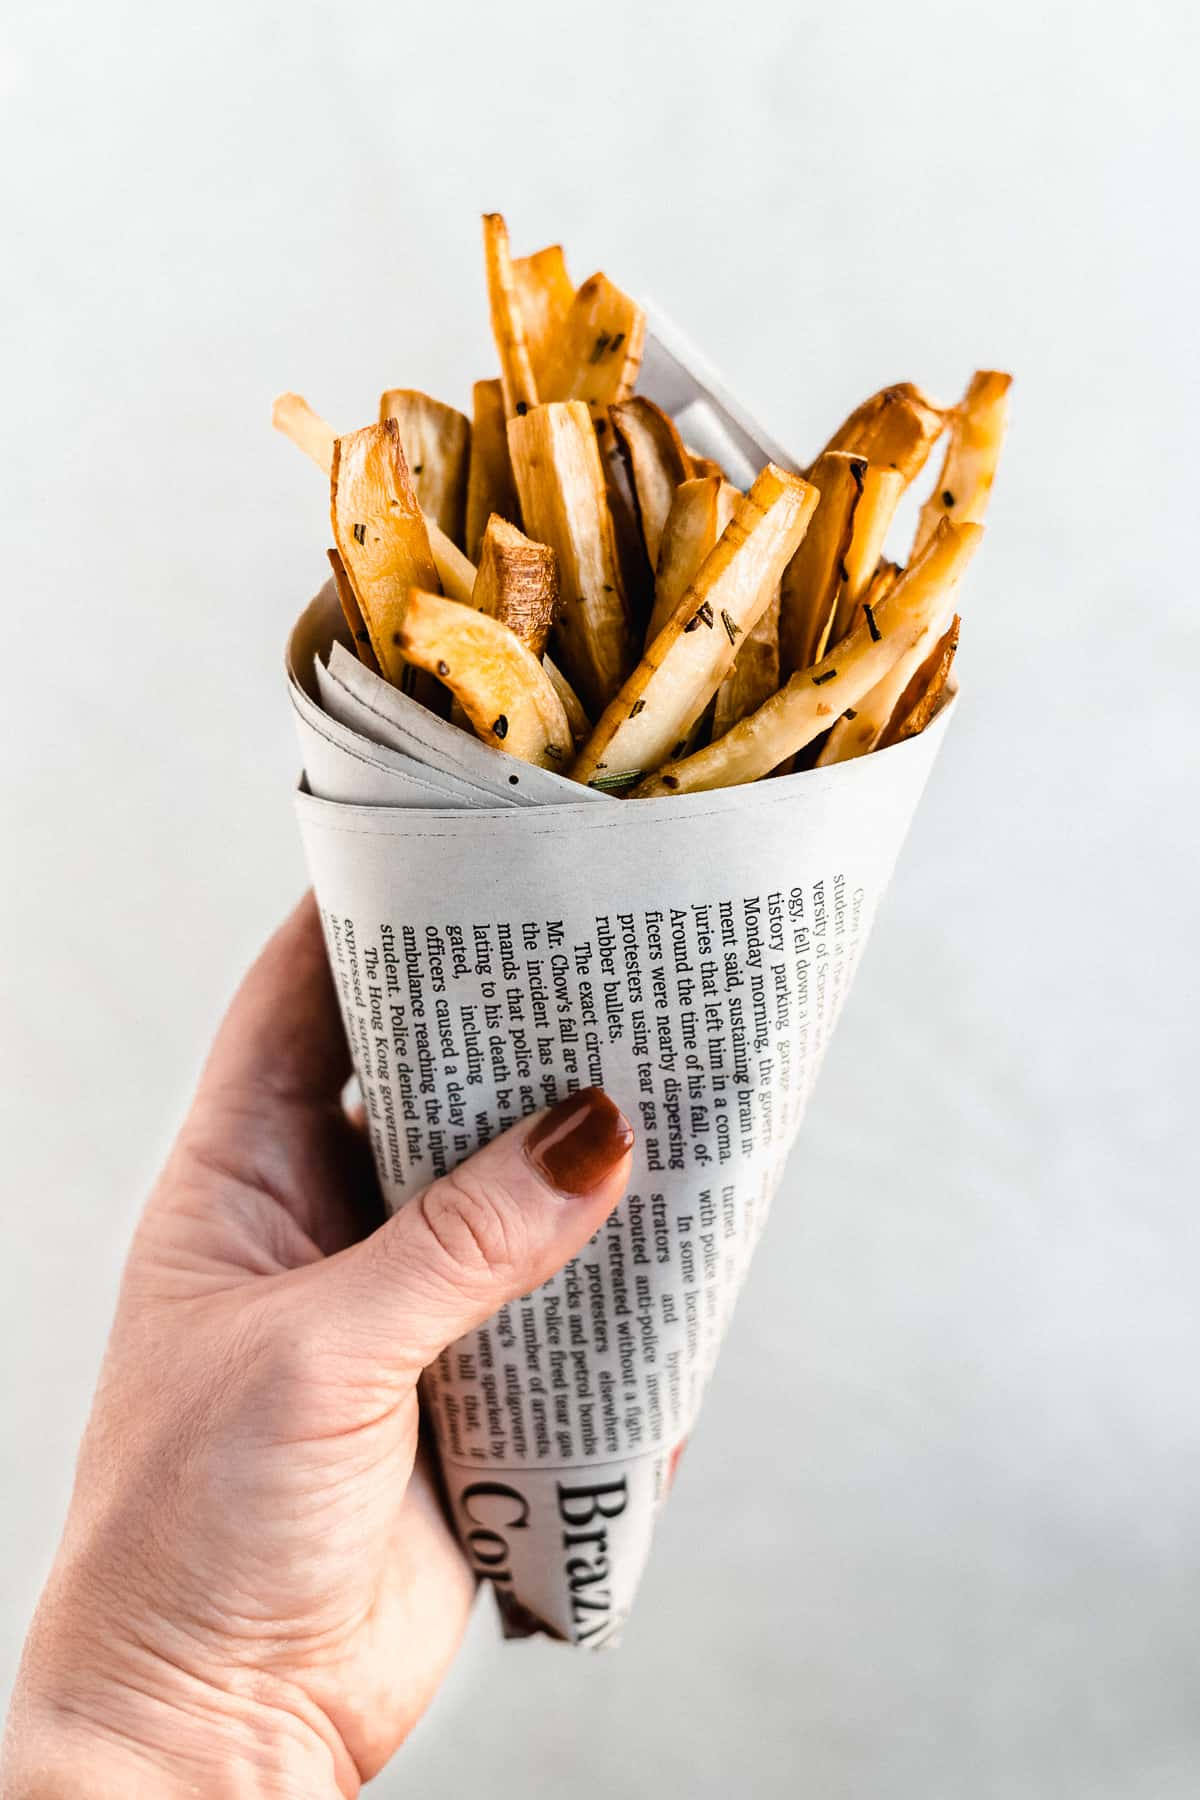 Side view image of Baked Parsnip Fries wrapped in a cone of newspaper being held up in the air by a hand.